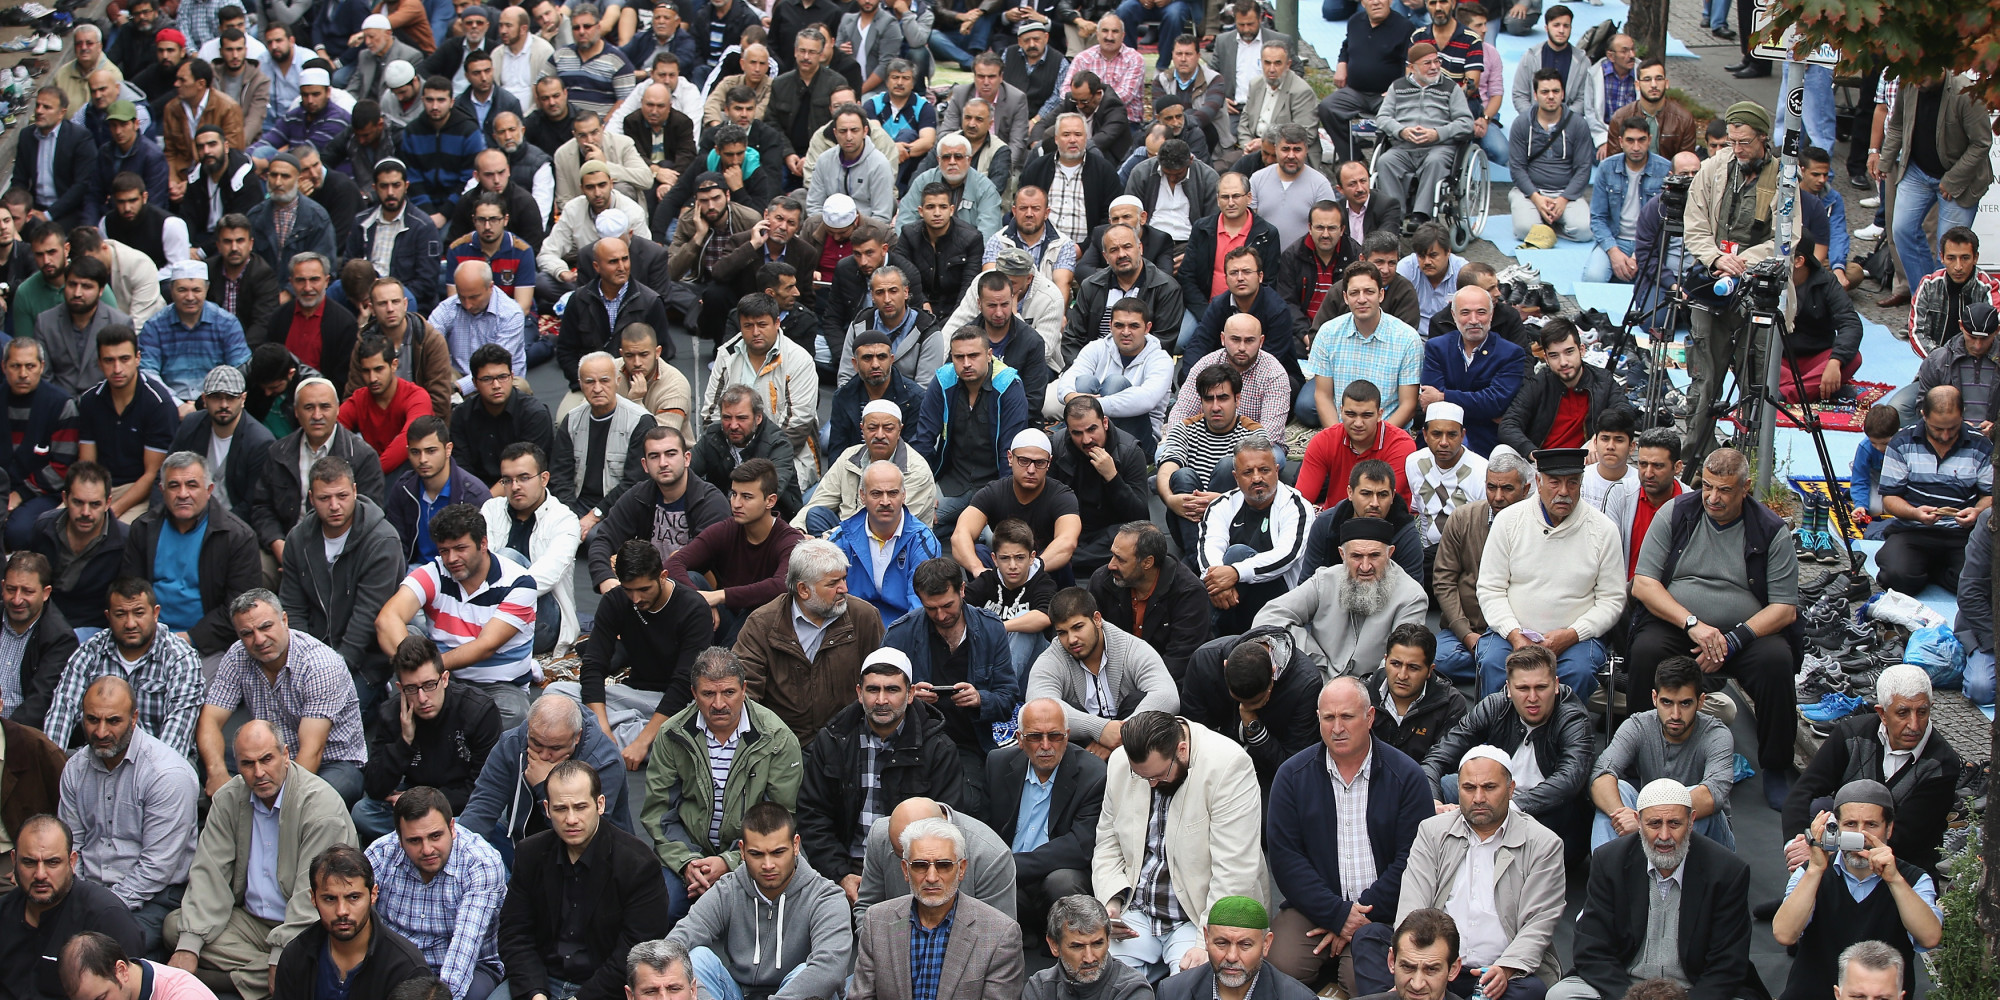 Muslims Around The World Rally Against Extremism